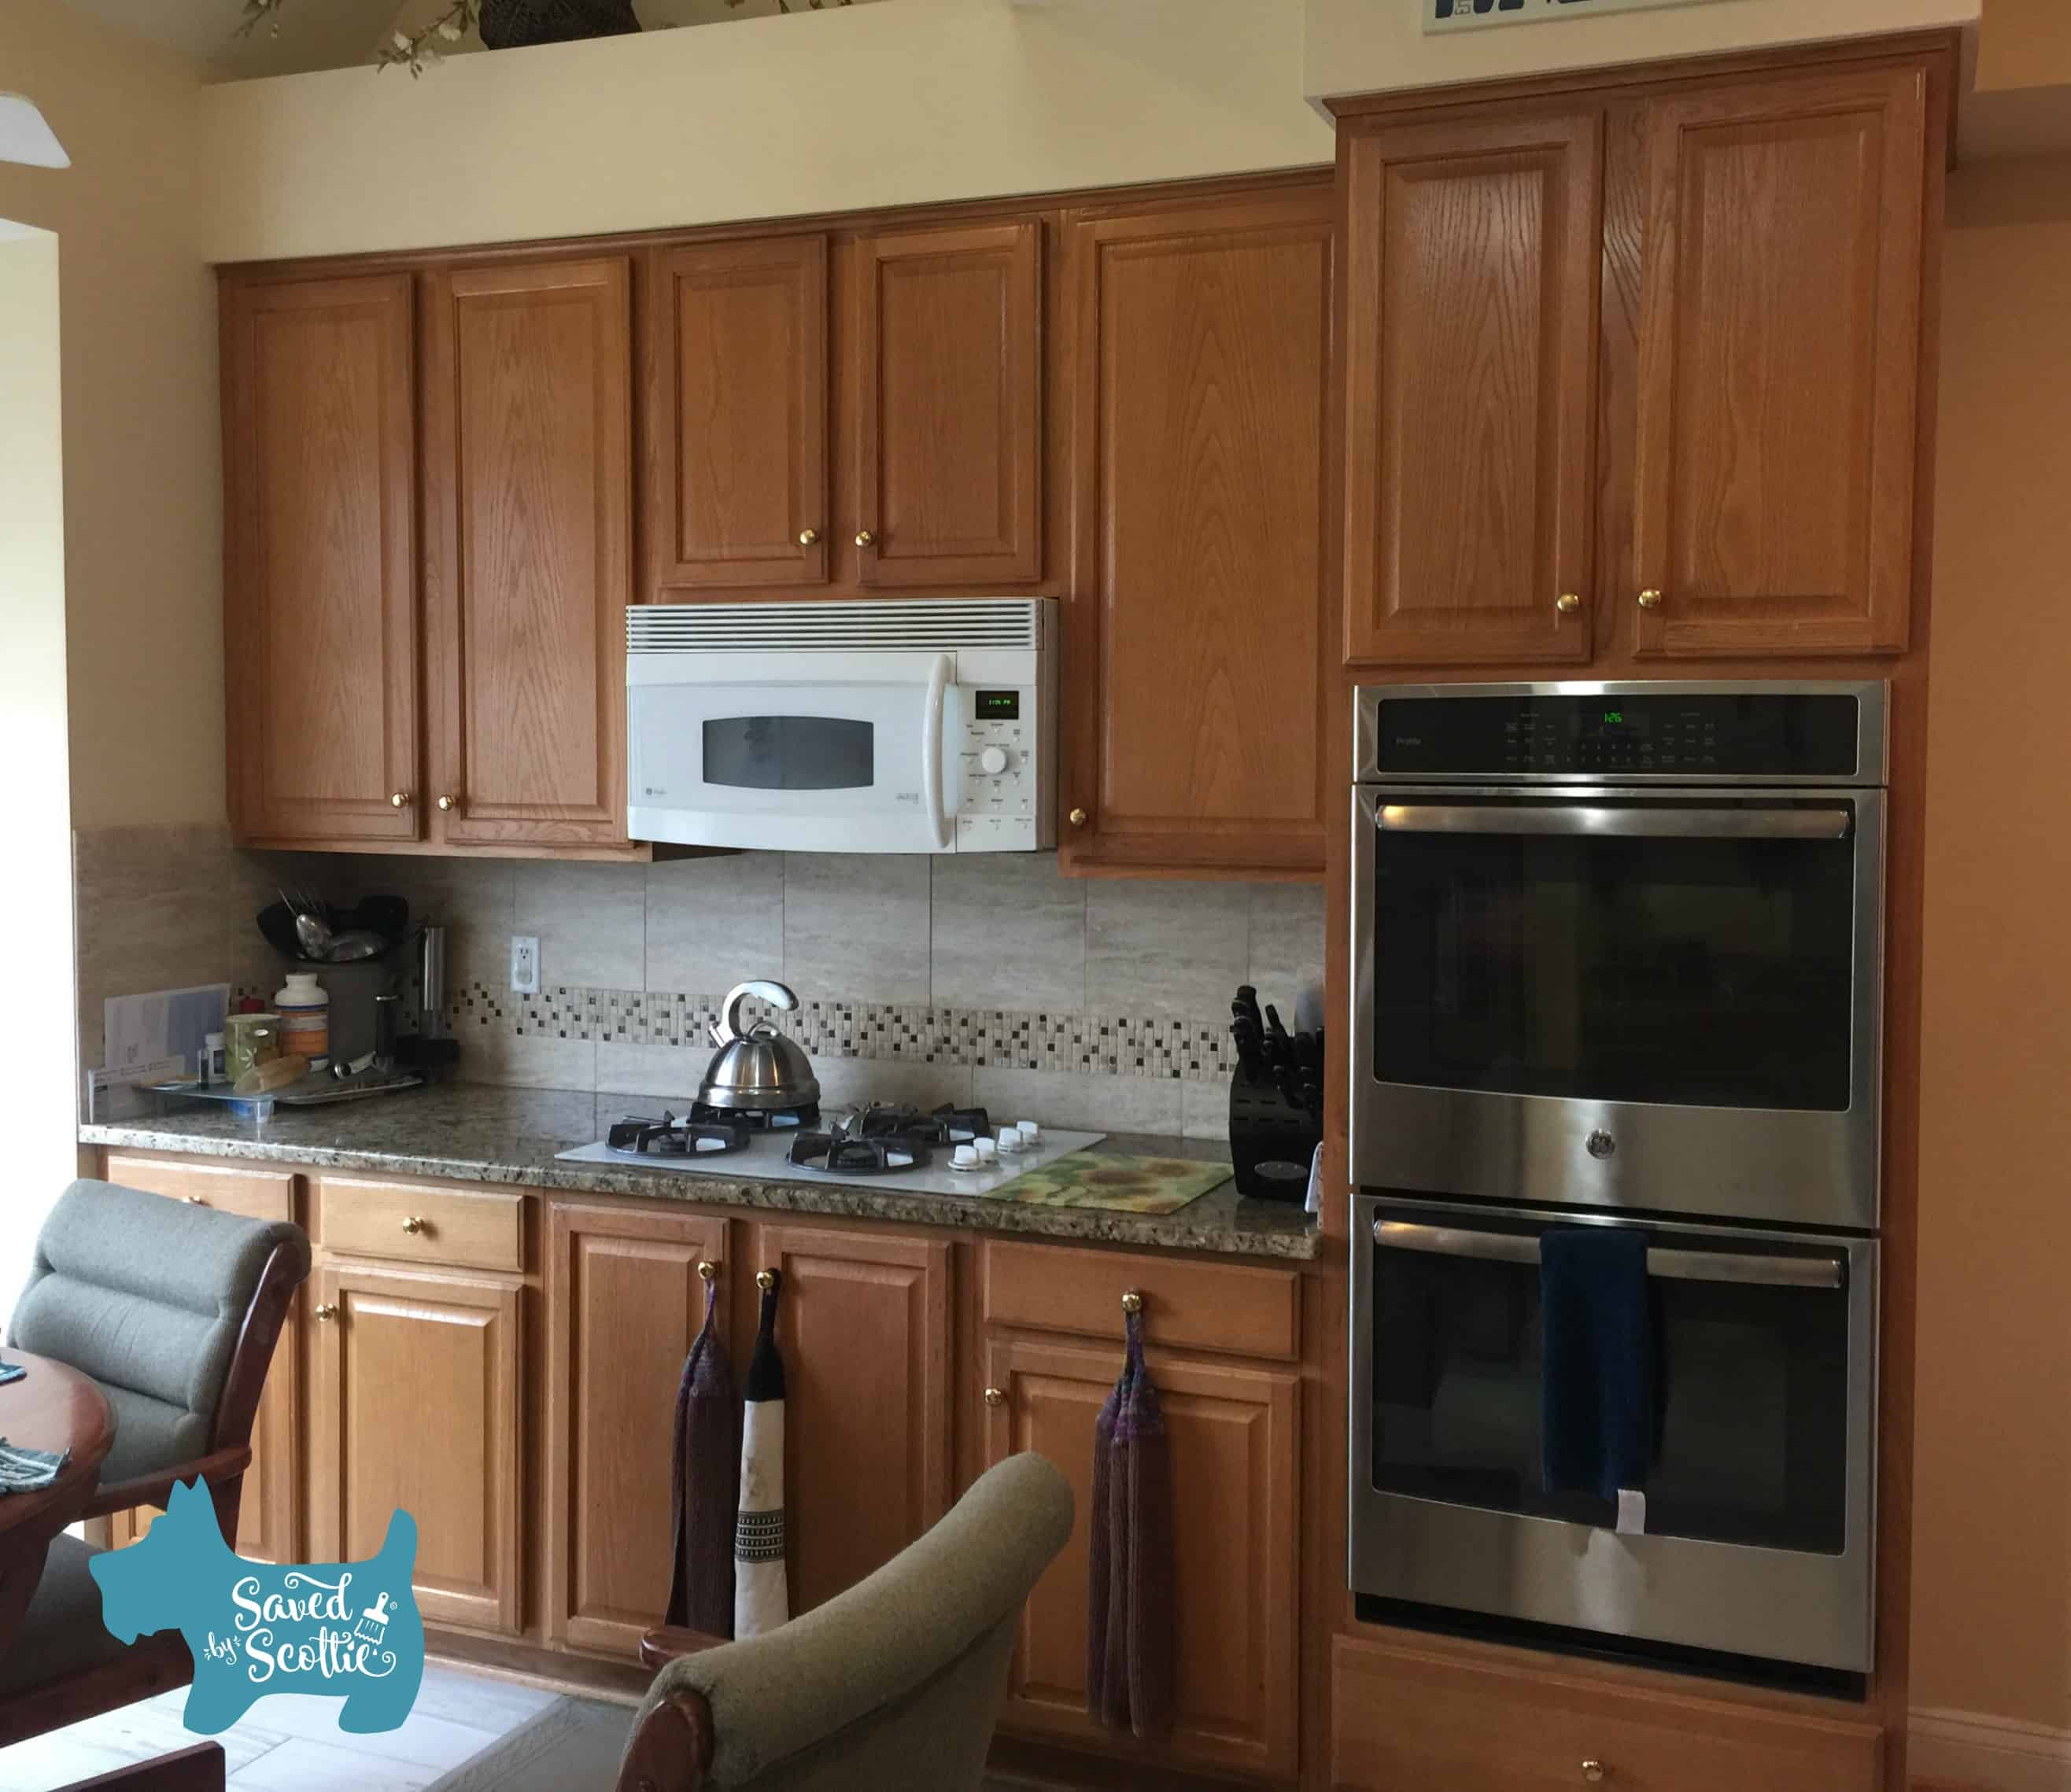 Saved by Scottie Alamo kitchen cook area before